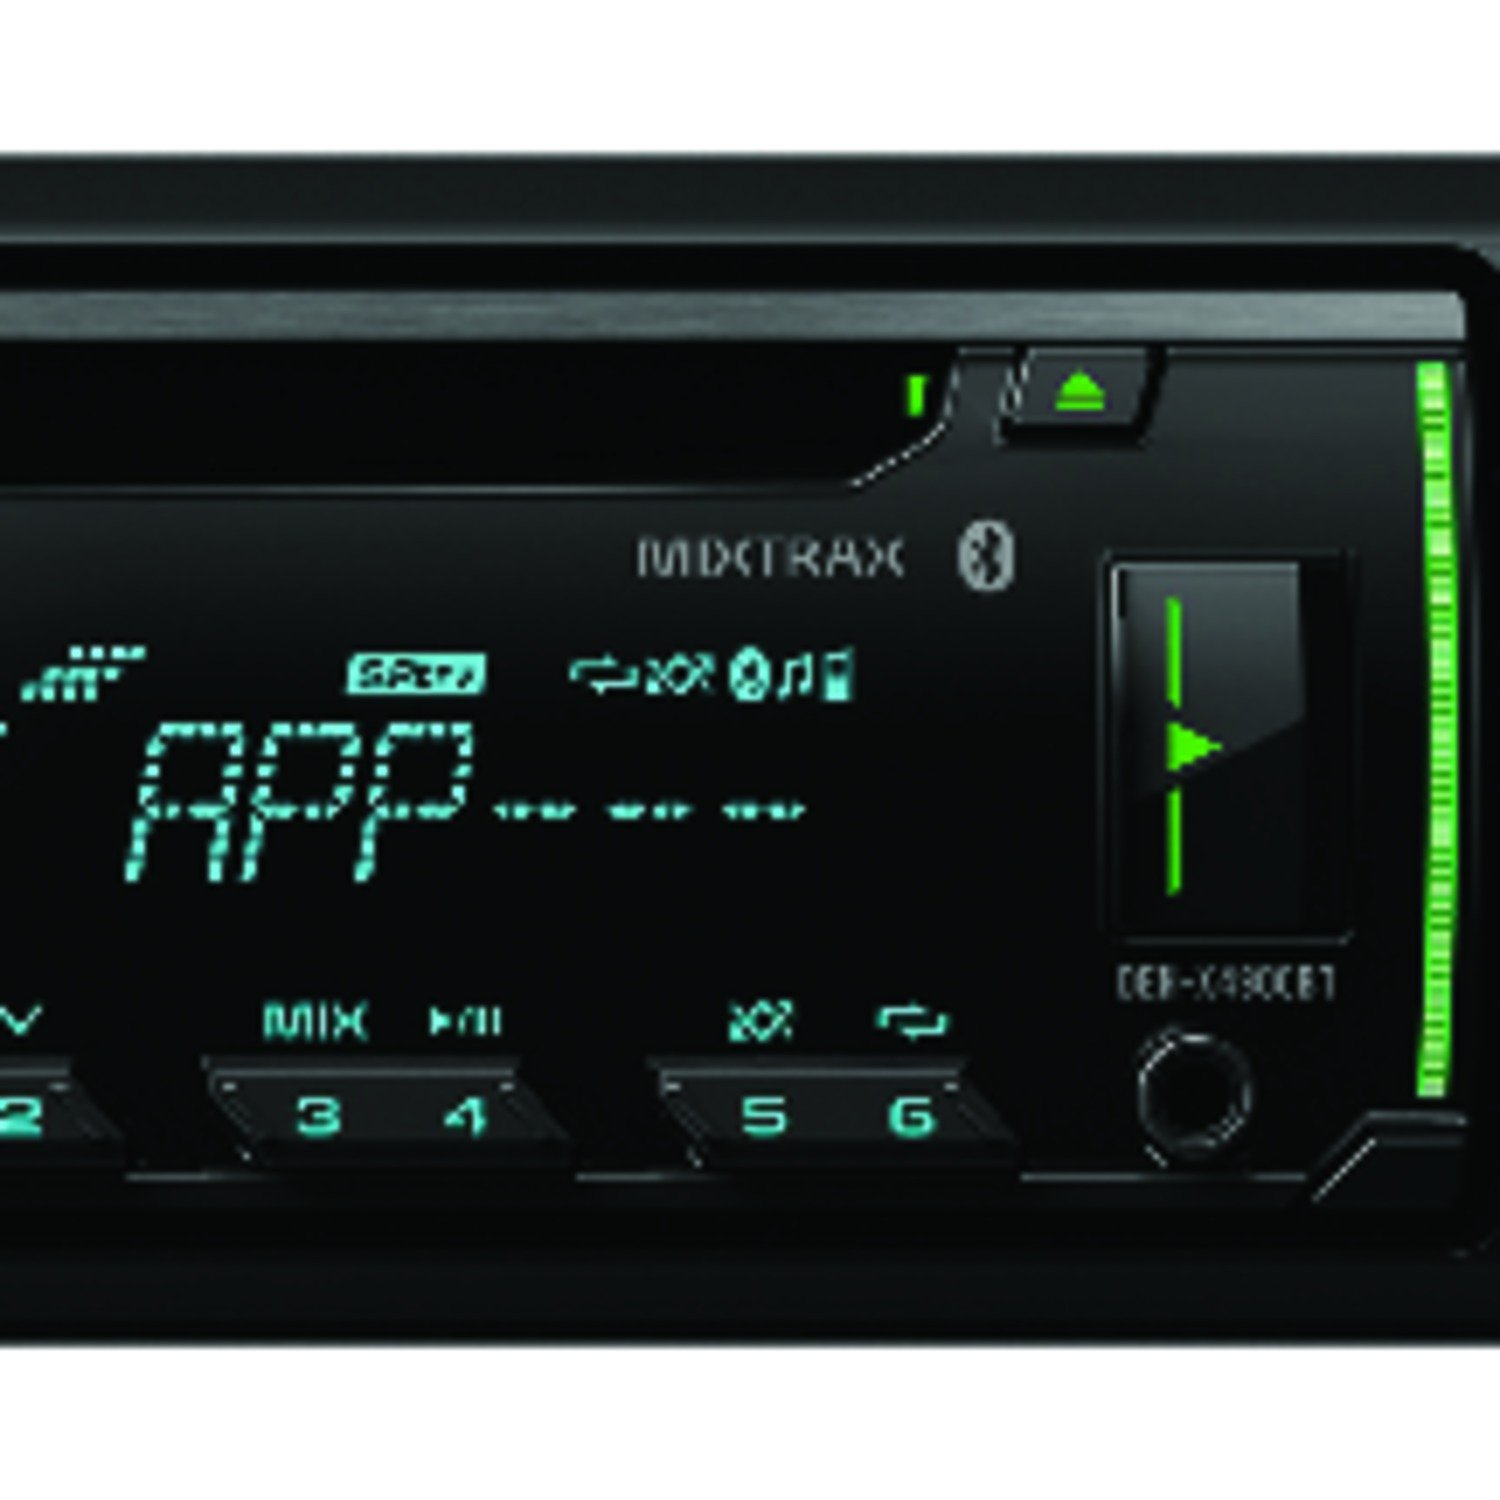 Pioneer Deh X4900bt Vehicle Cd Digital Music Player Car Stereo Wiring Diagram Besides Receivers Black Cell Phones Accessories